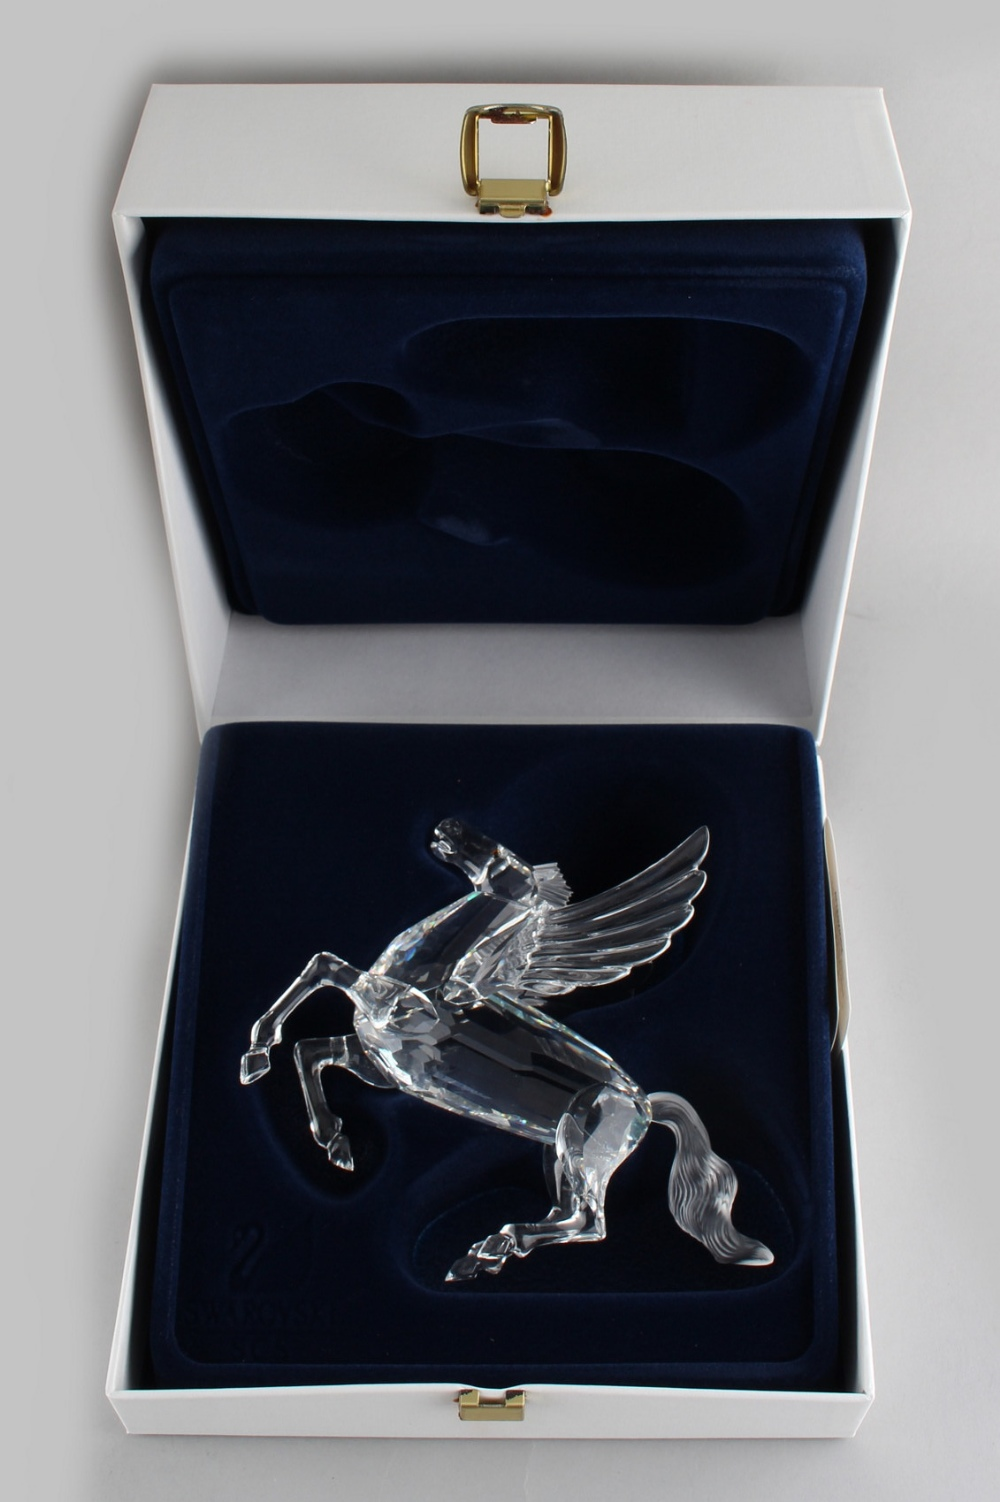 Lot 96 - A private collection of Swarovski crystal glass - Pegasus, the 1998 Annual Edition 'Fabulous